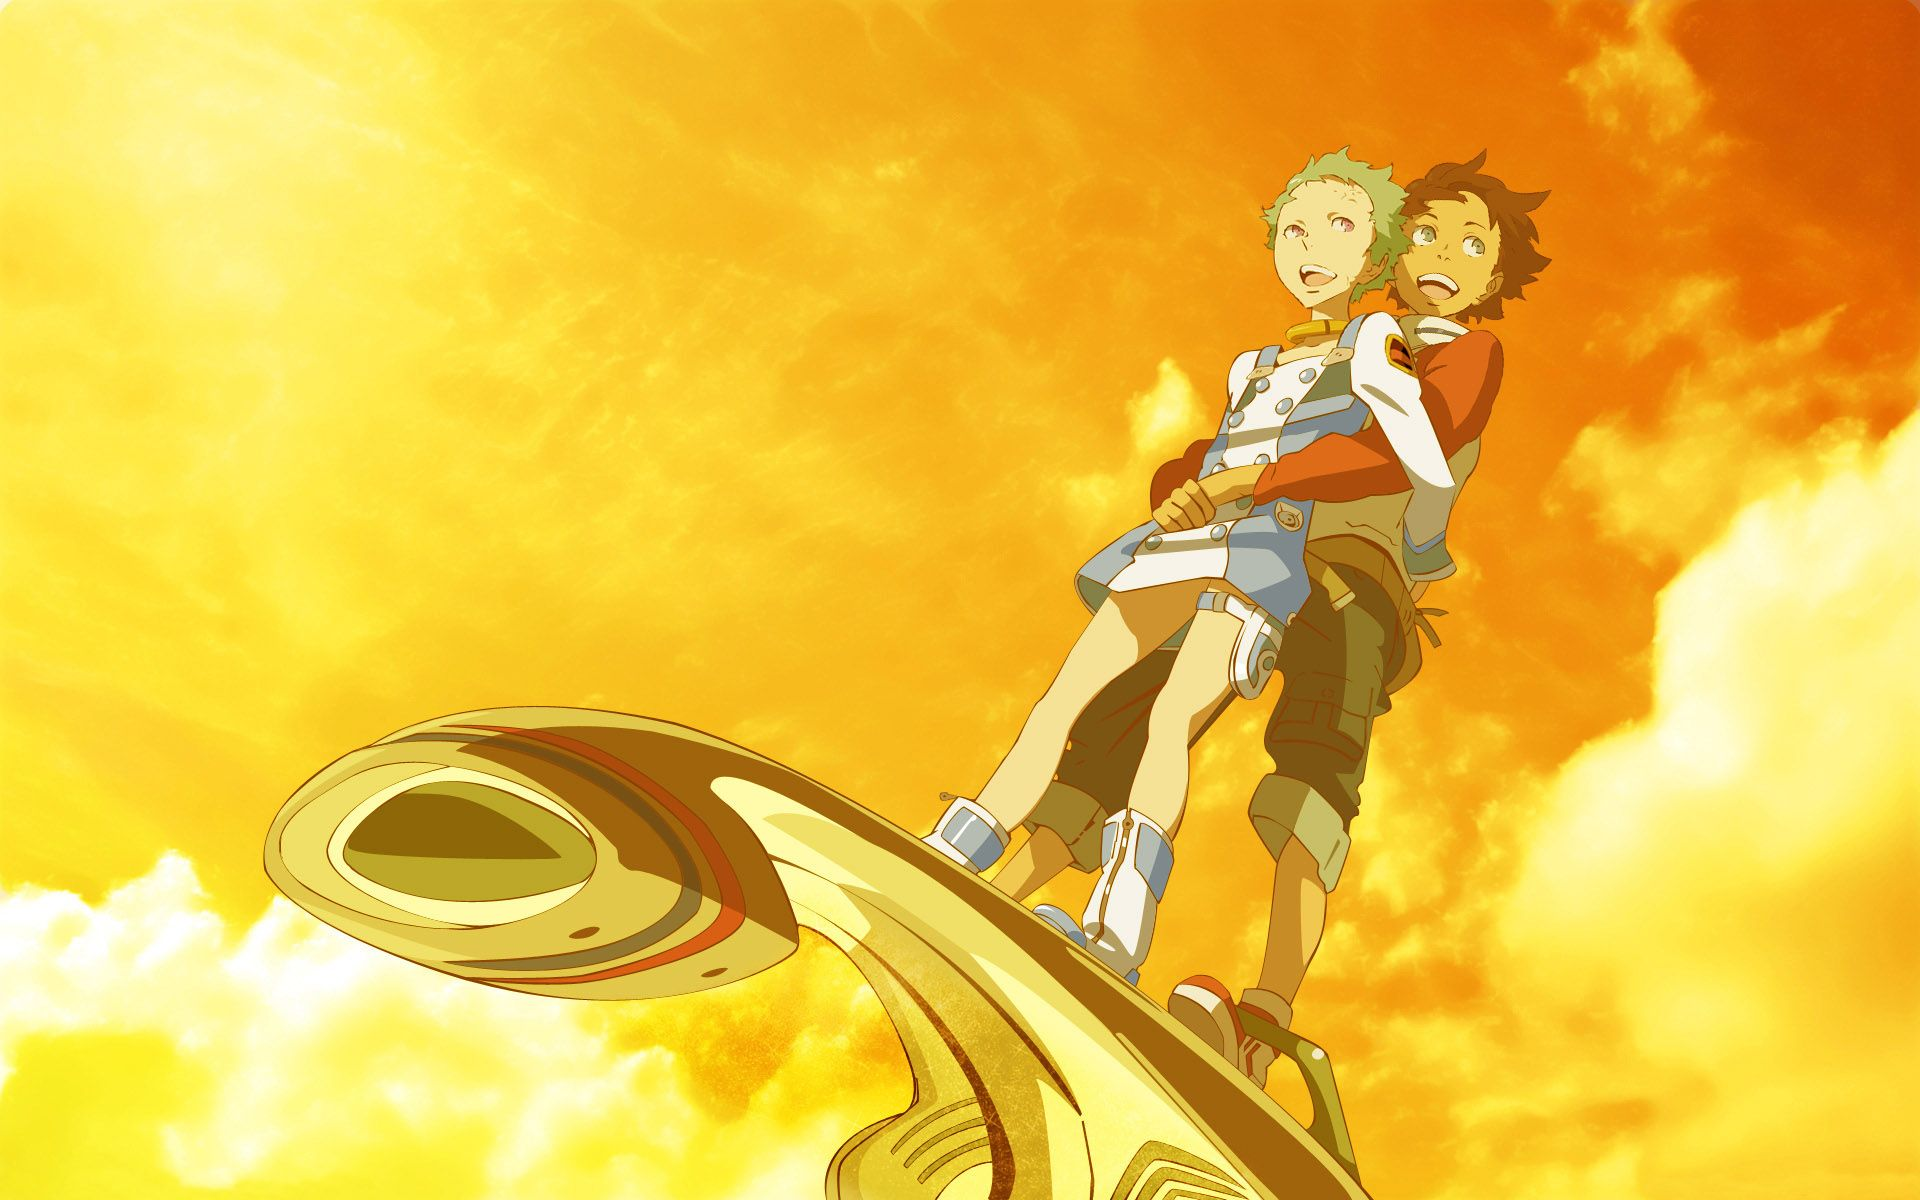 Visit Site To Download Cool Wallpapers For Boys Eureka Seven Wallpaper 225381 Wallpapers Coolwallpapers Coolwallp Cool Anime Wallpapers Anime Anime Shows